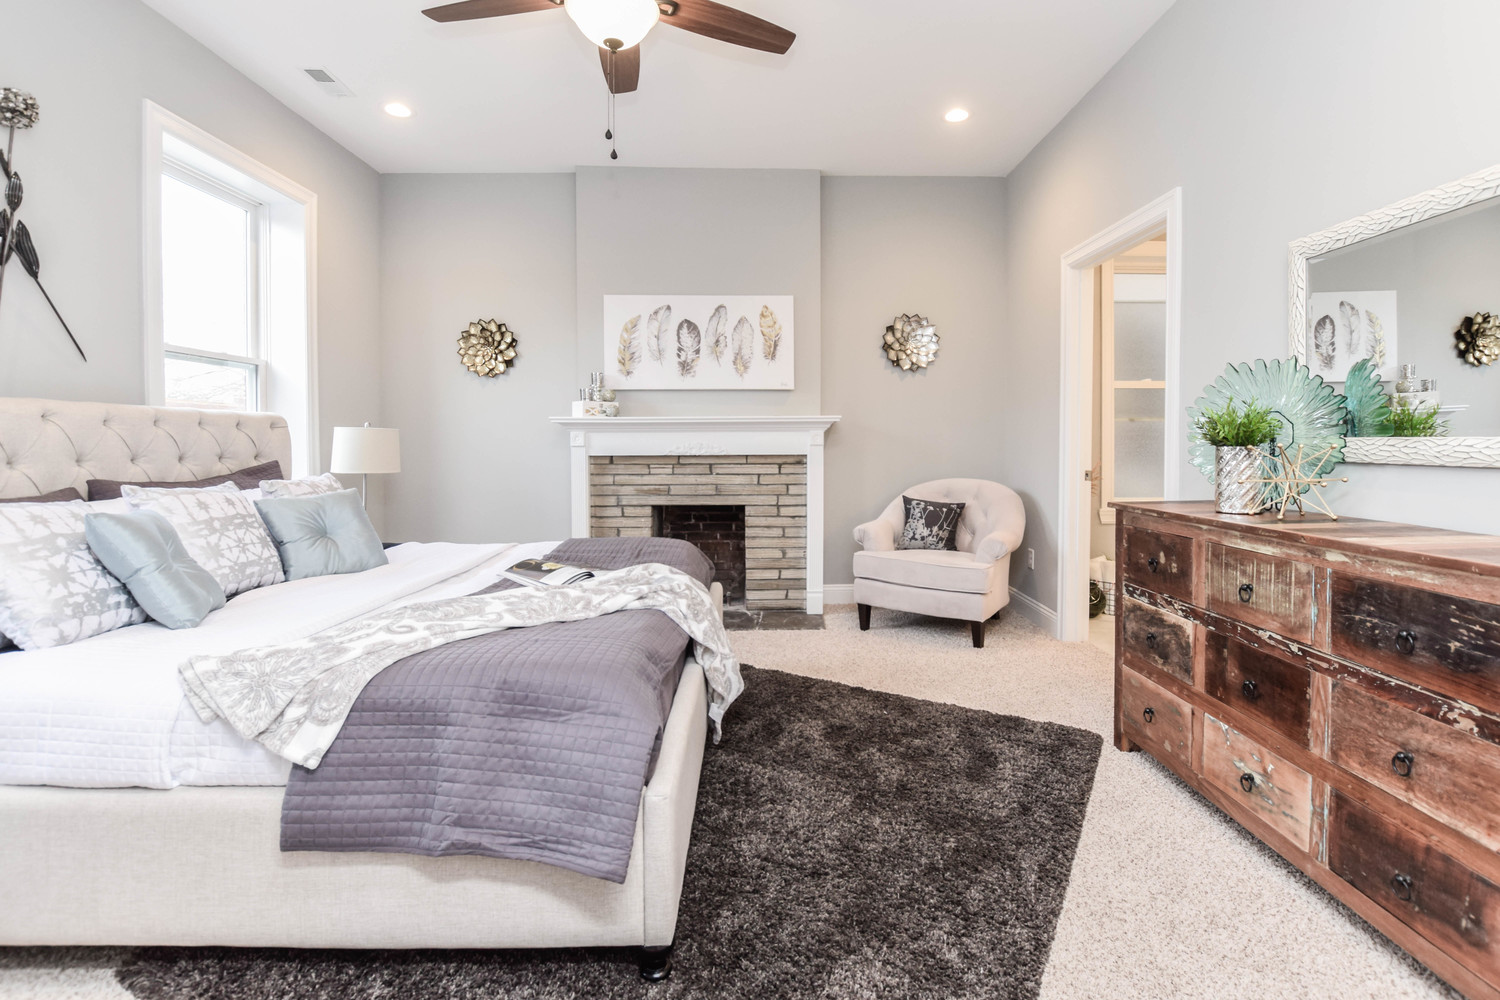 Hometenders Home Staging St Louis (61)